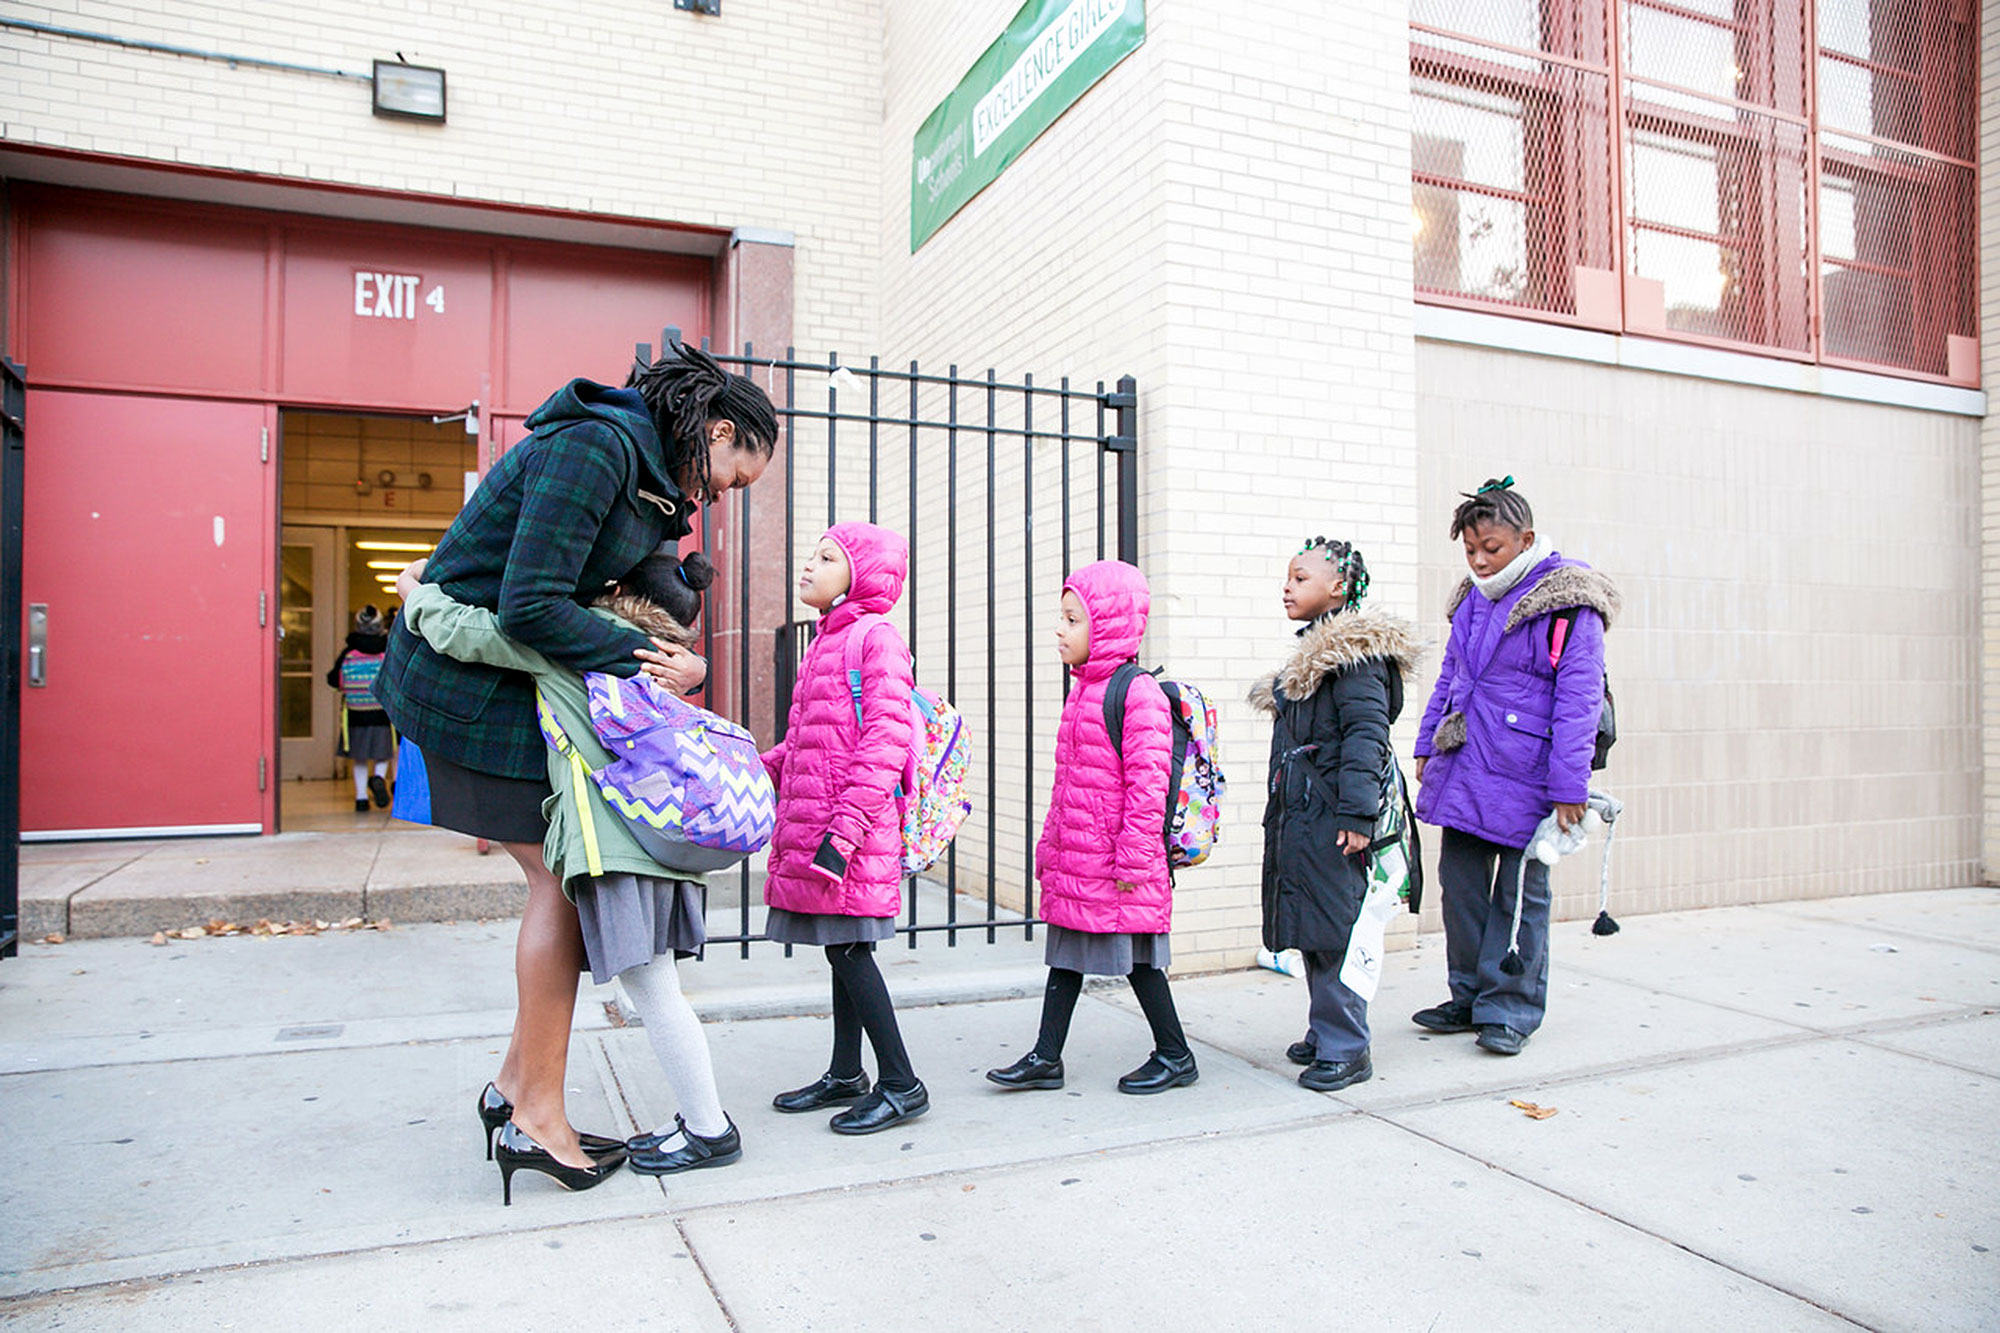 Brooklyn Principal Inspires Young Girls With Curriculum Built Around 'Fierce Females